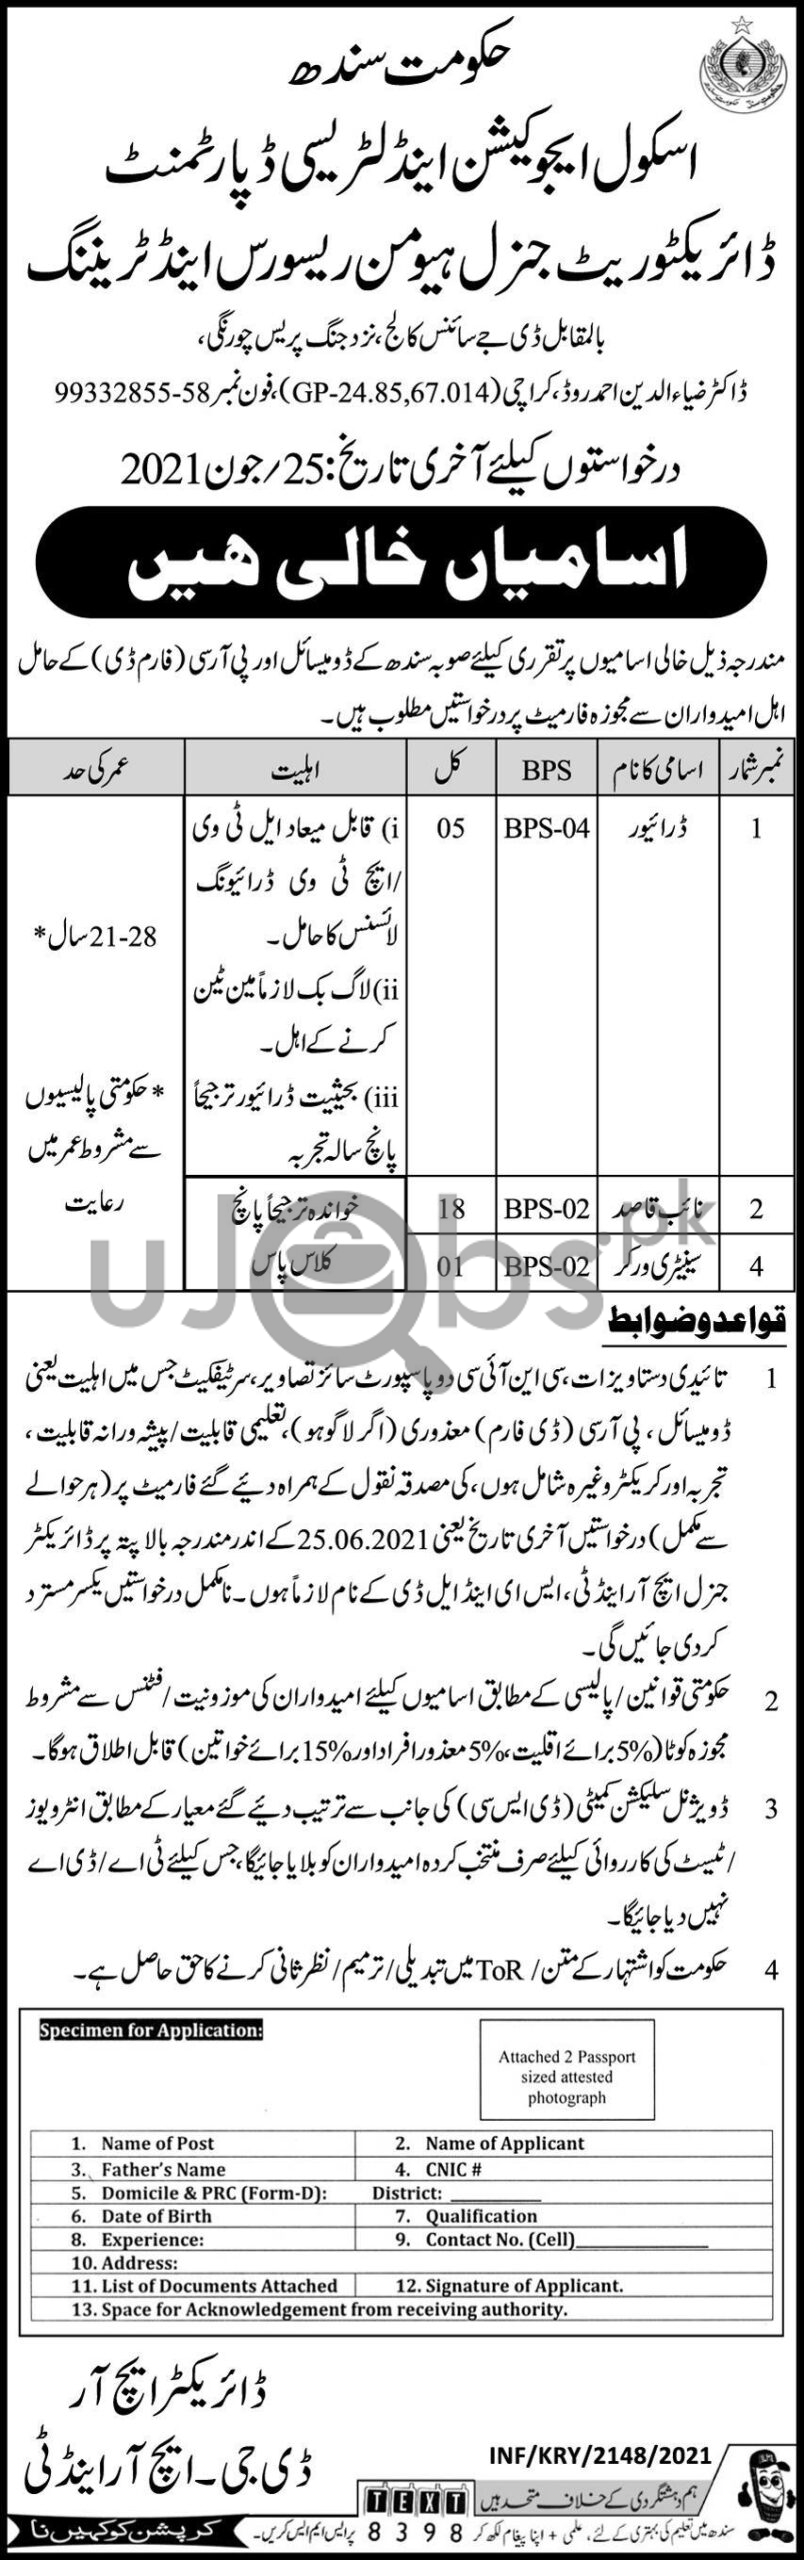 School Education and Literacy Department Sindh Government Jobs 2021